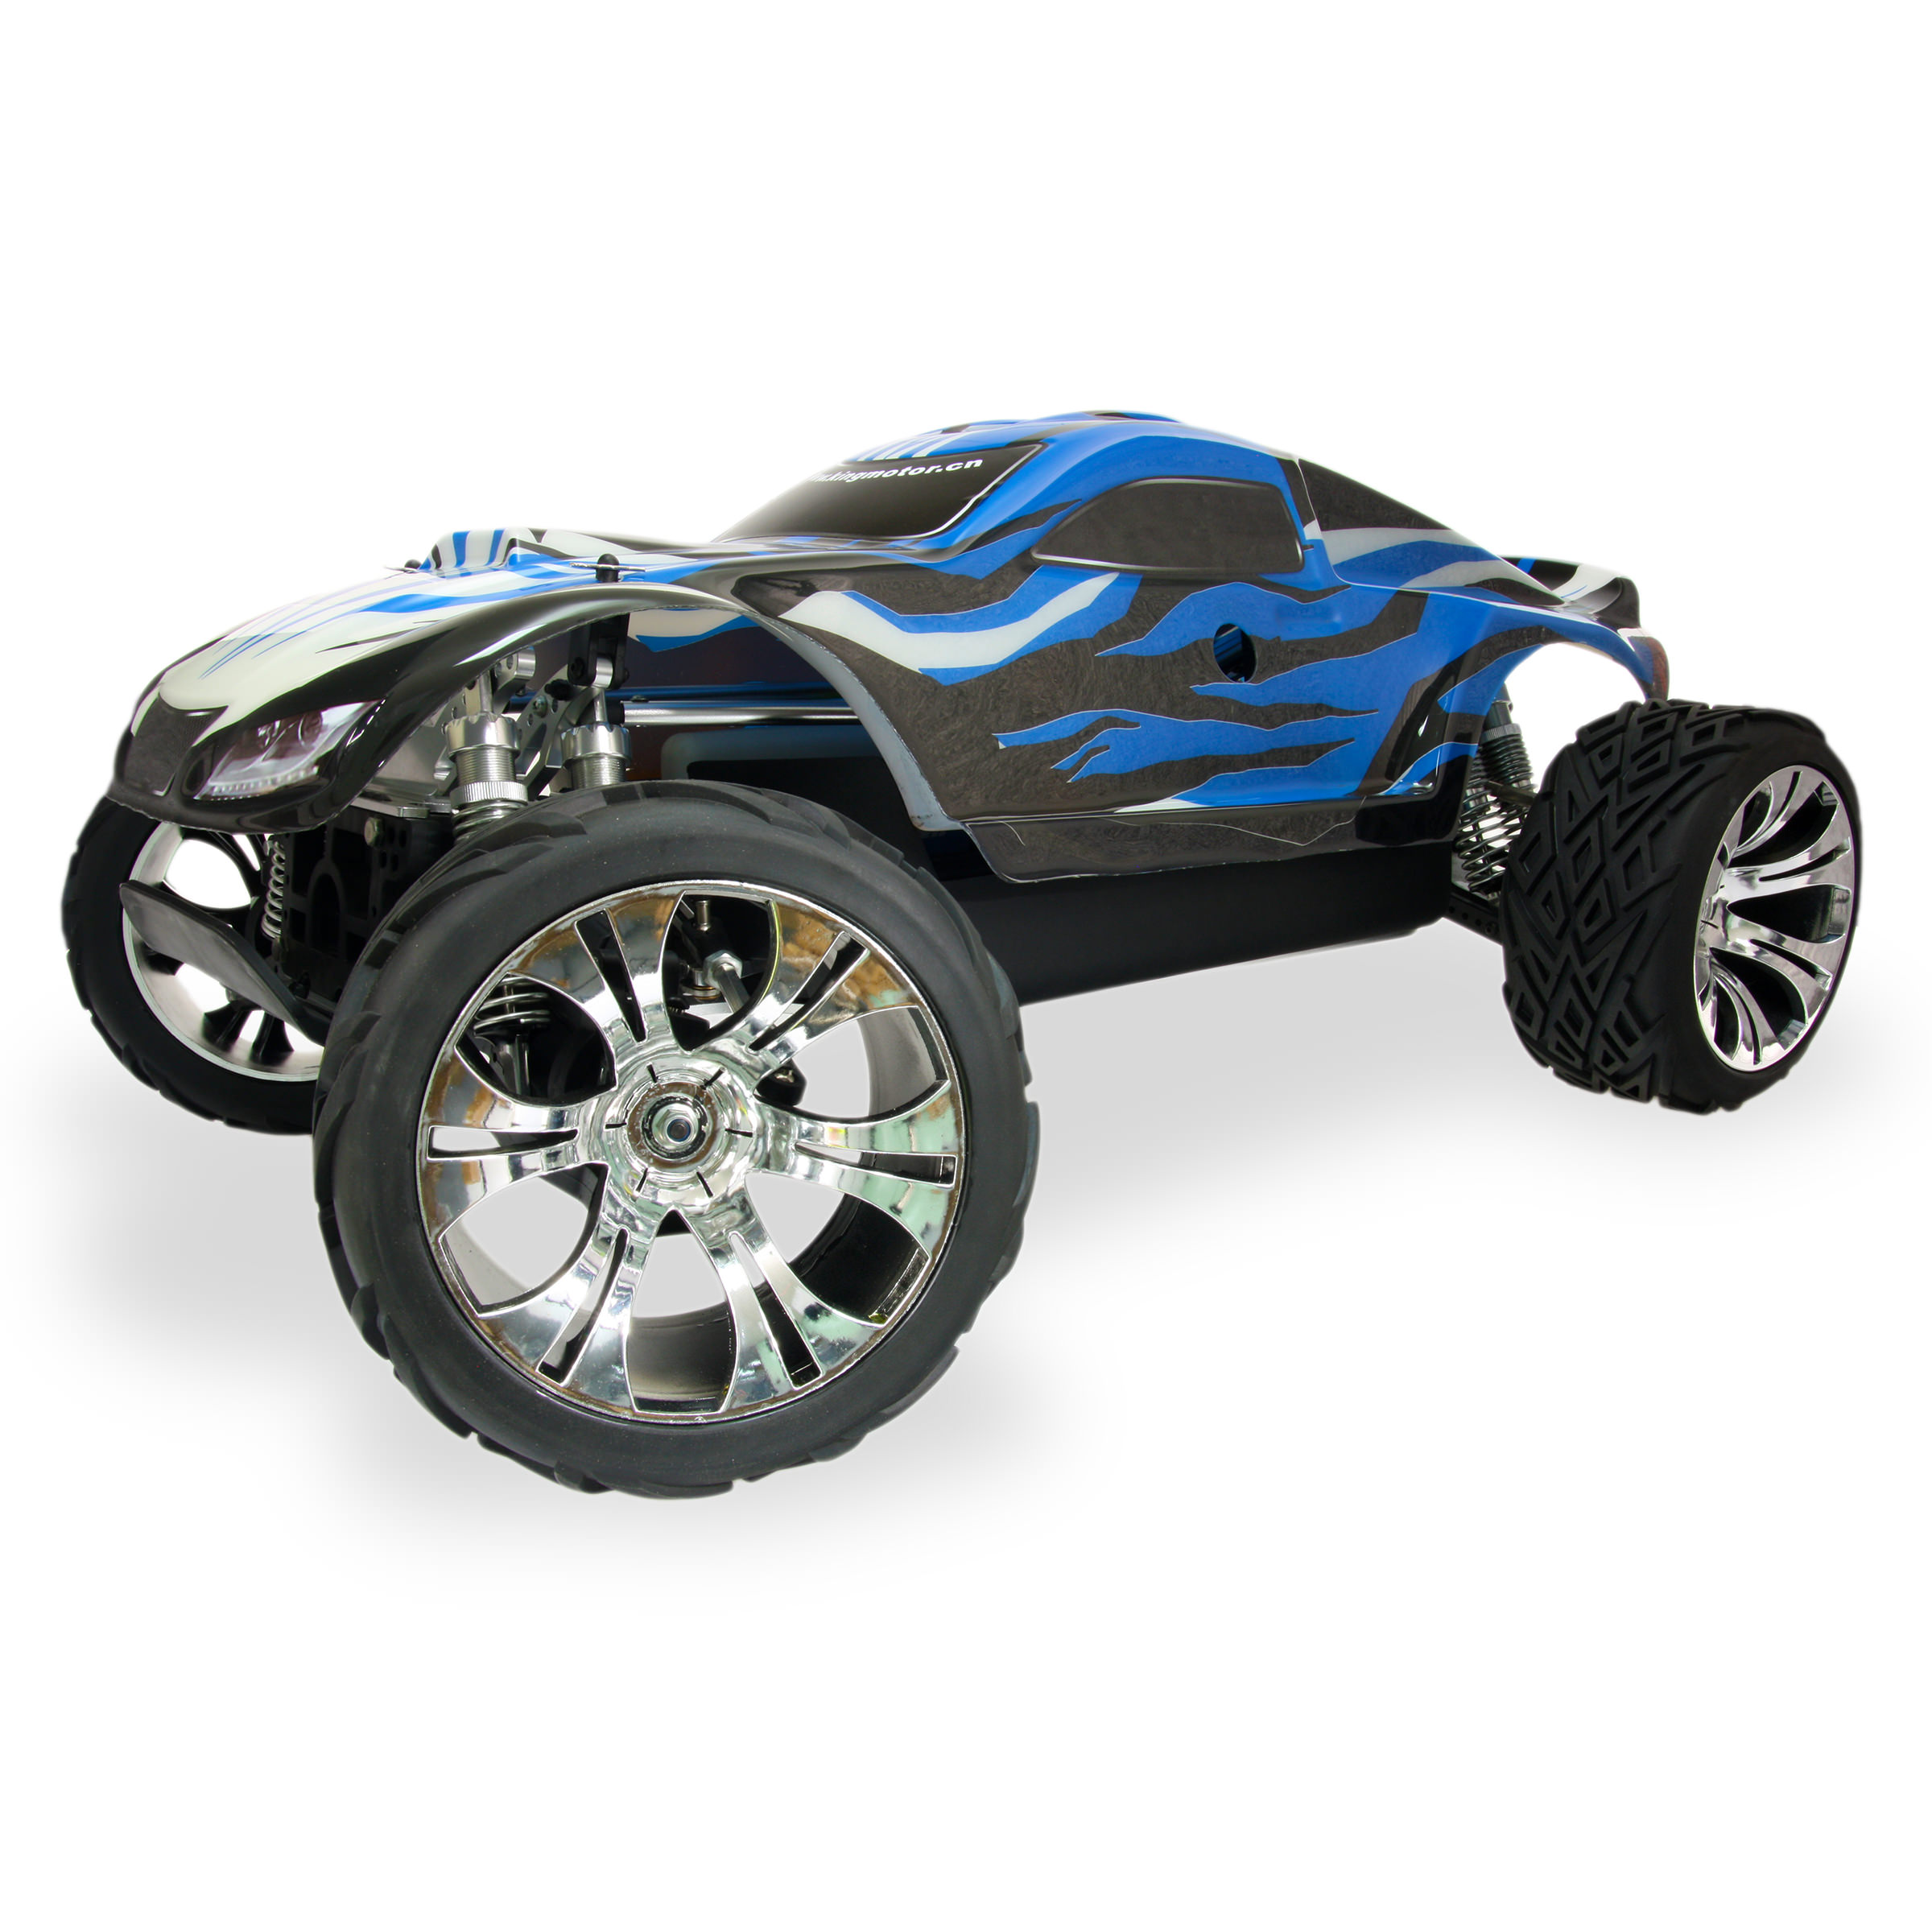 King Motor X1 Blue Rc Truggy At Hobby Warehouse